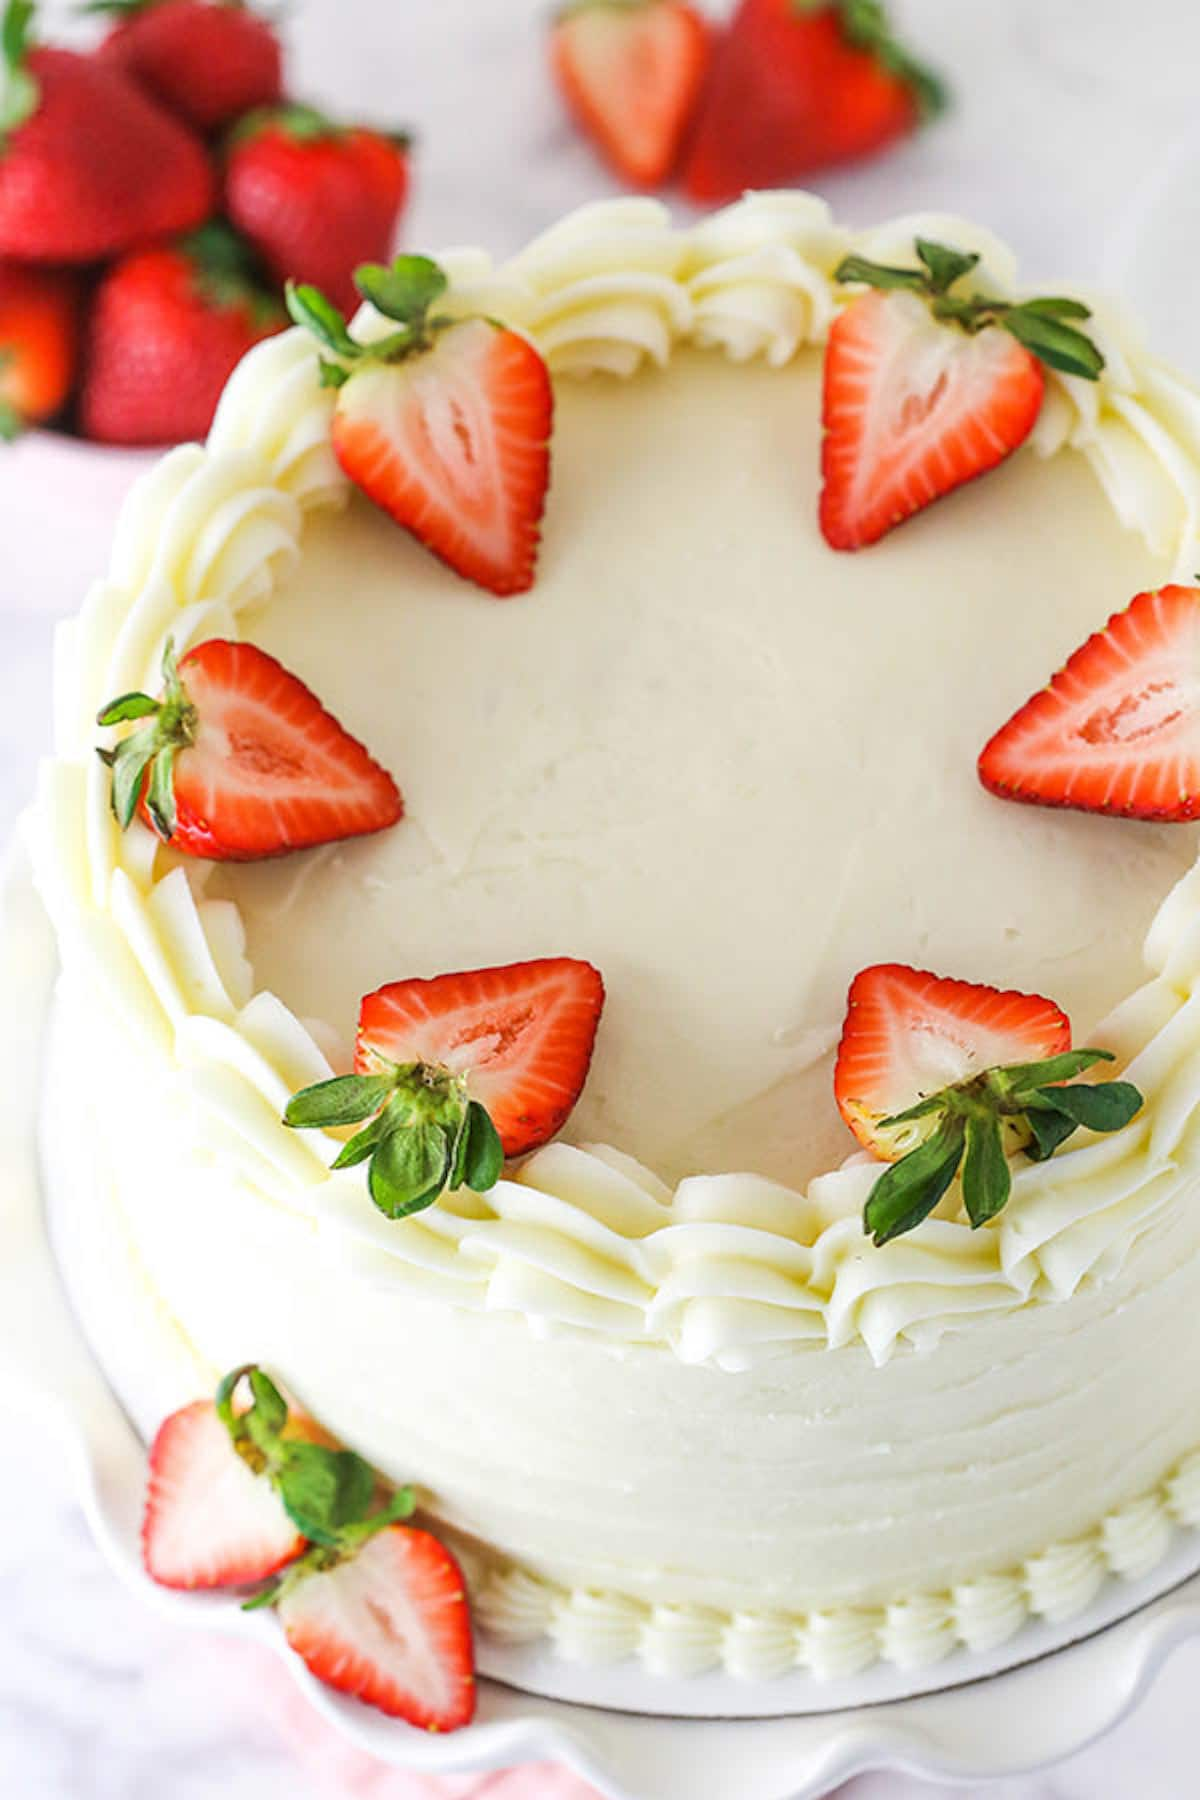 A Strawberry Layer Cake Garnished With Fresh Strawberry Slices